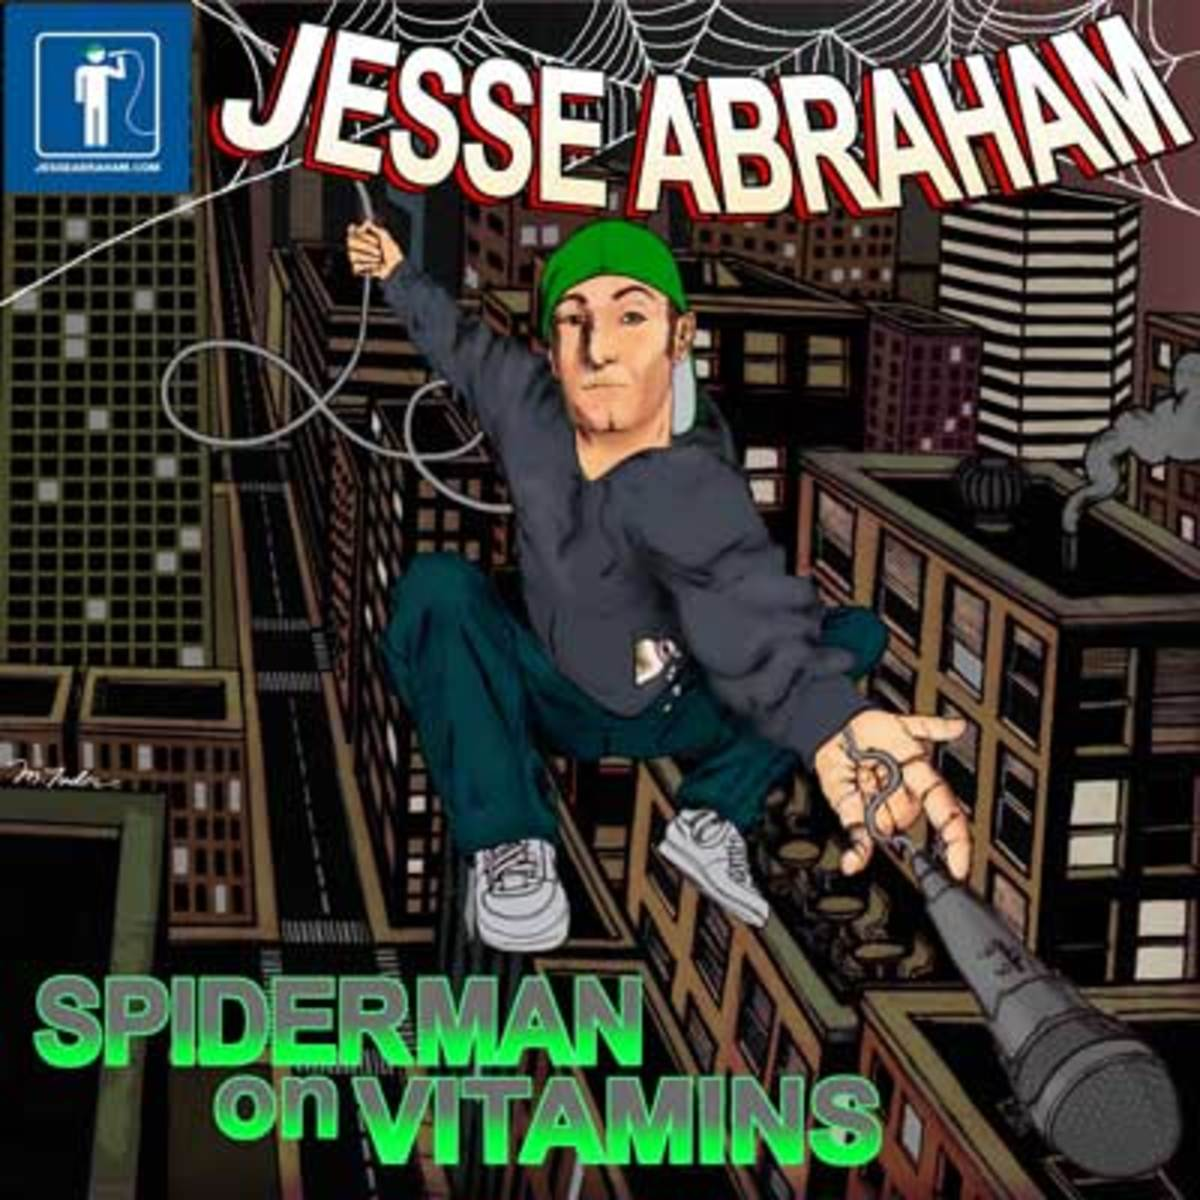 jesseabraham-spidermanonvitamins.jpg